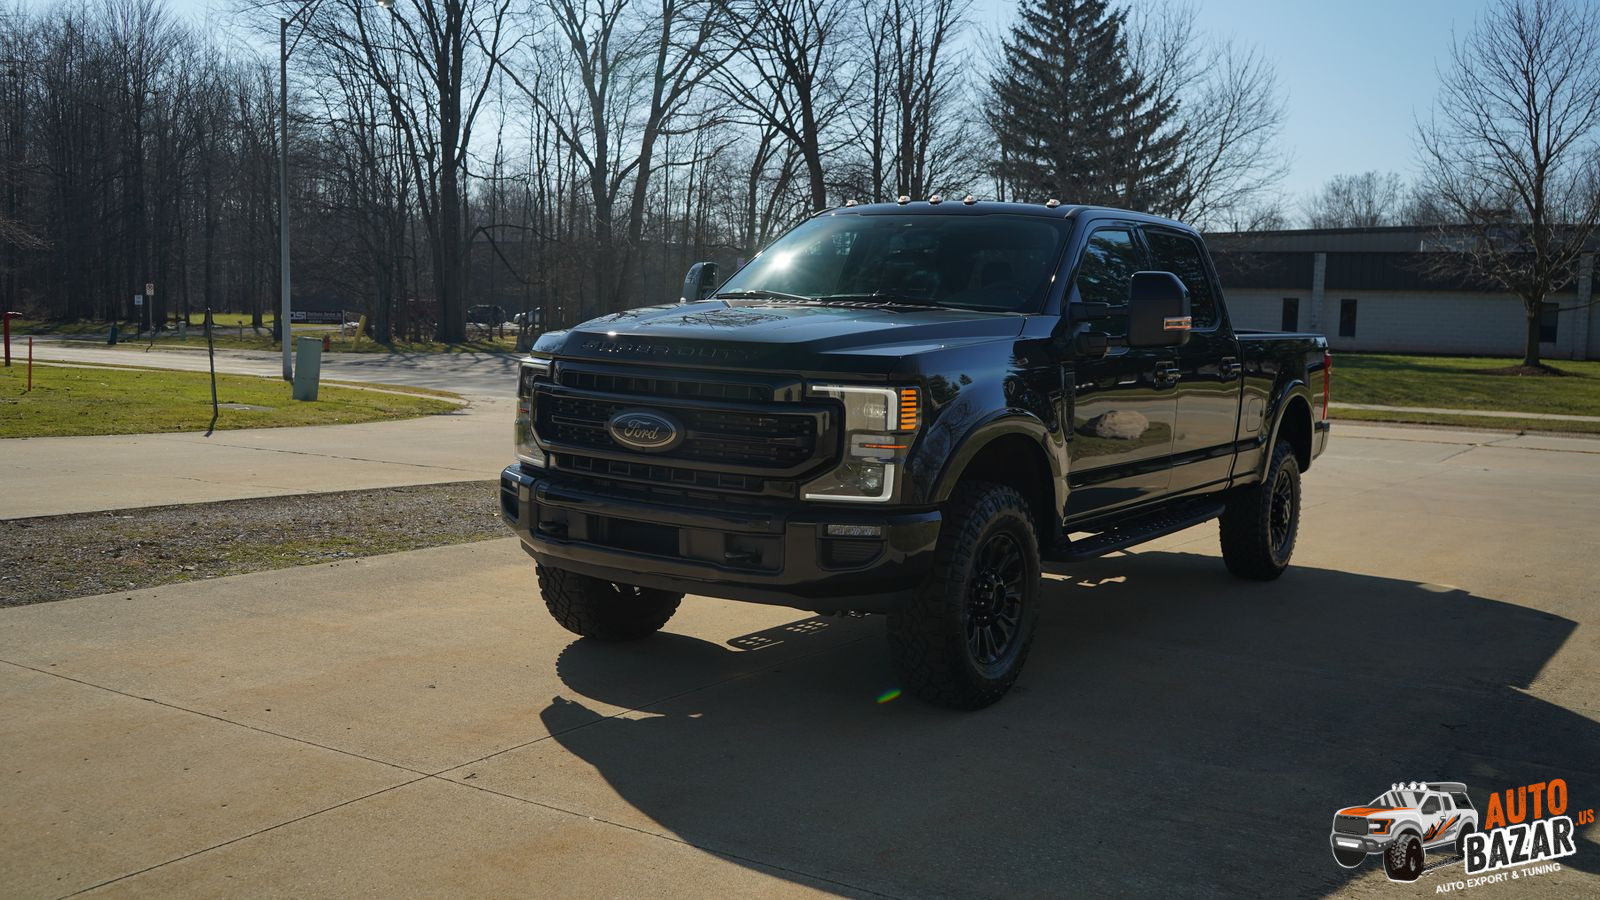 2021 Ford F350 SuperDuty Lariat SRW 4x4 CrewCab with Off-road Tremor Package